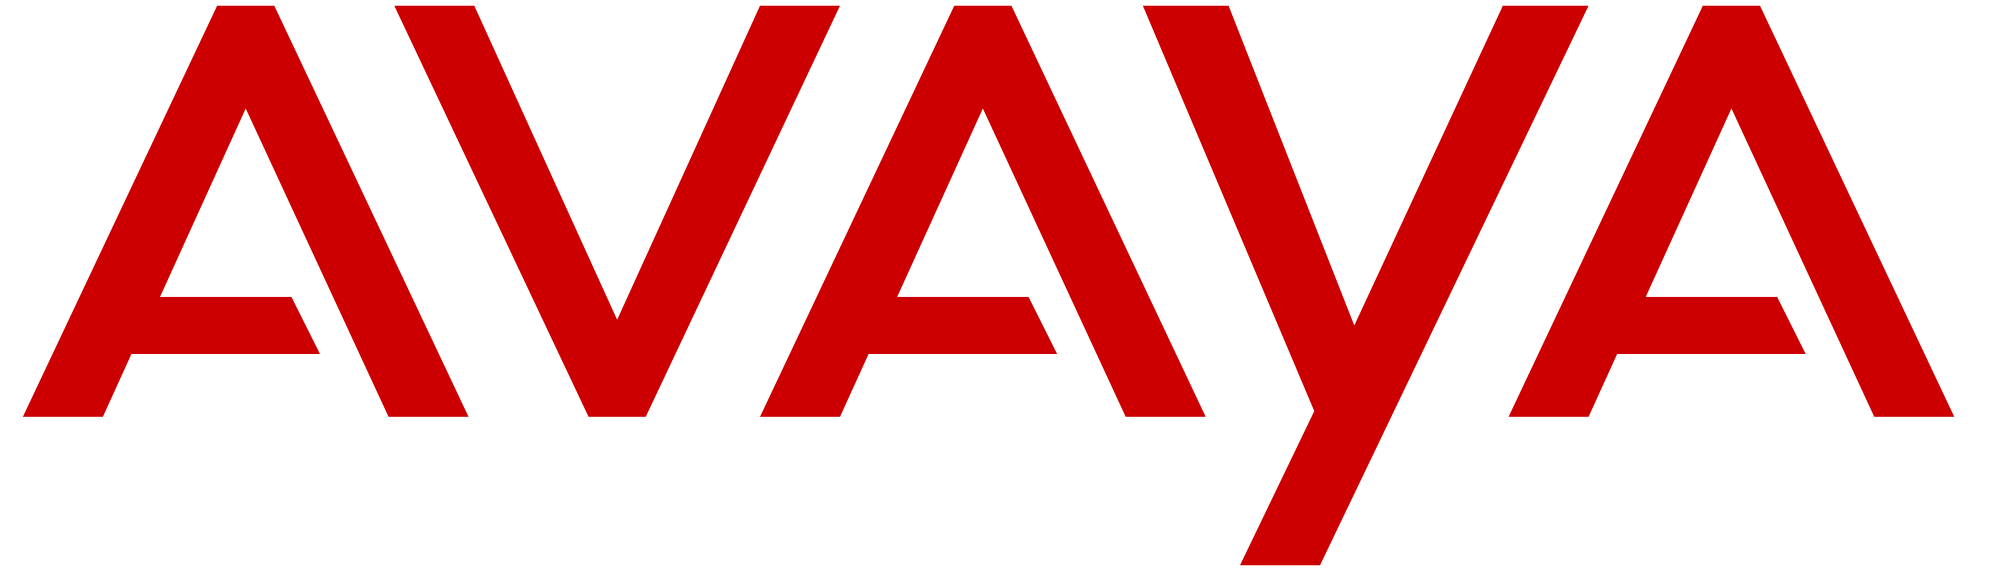 Please click here to go to the Avaya Contact Centre Select page